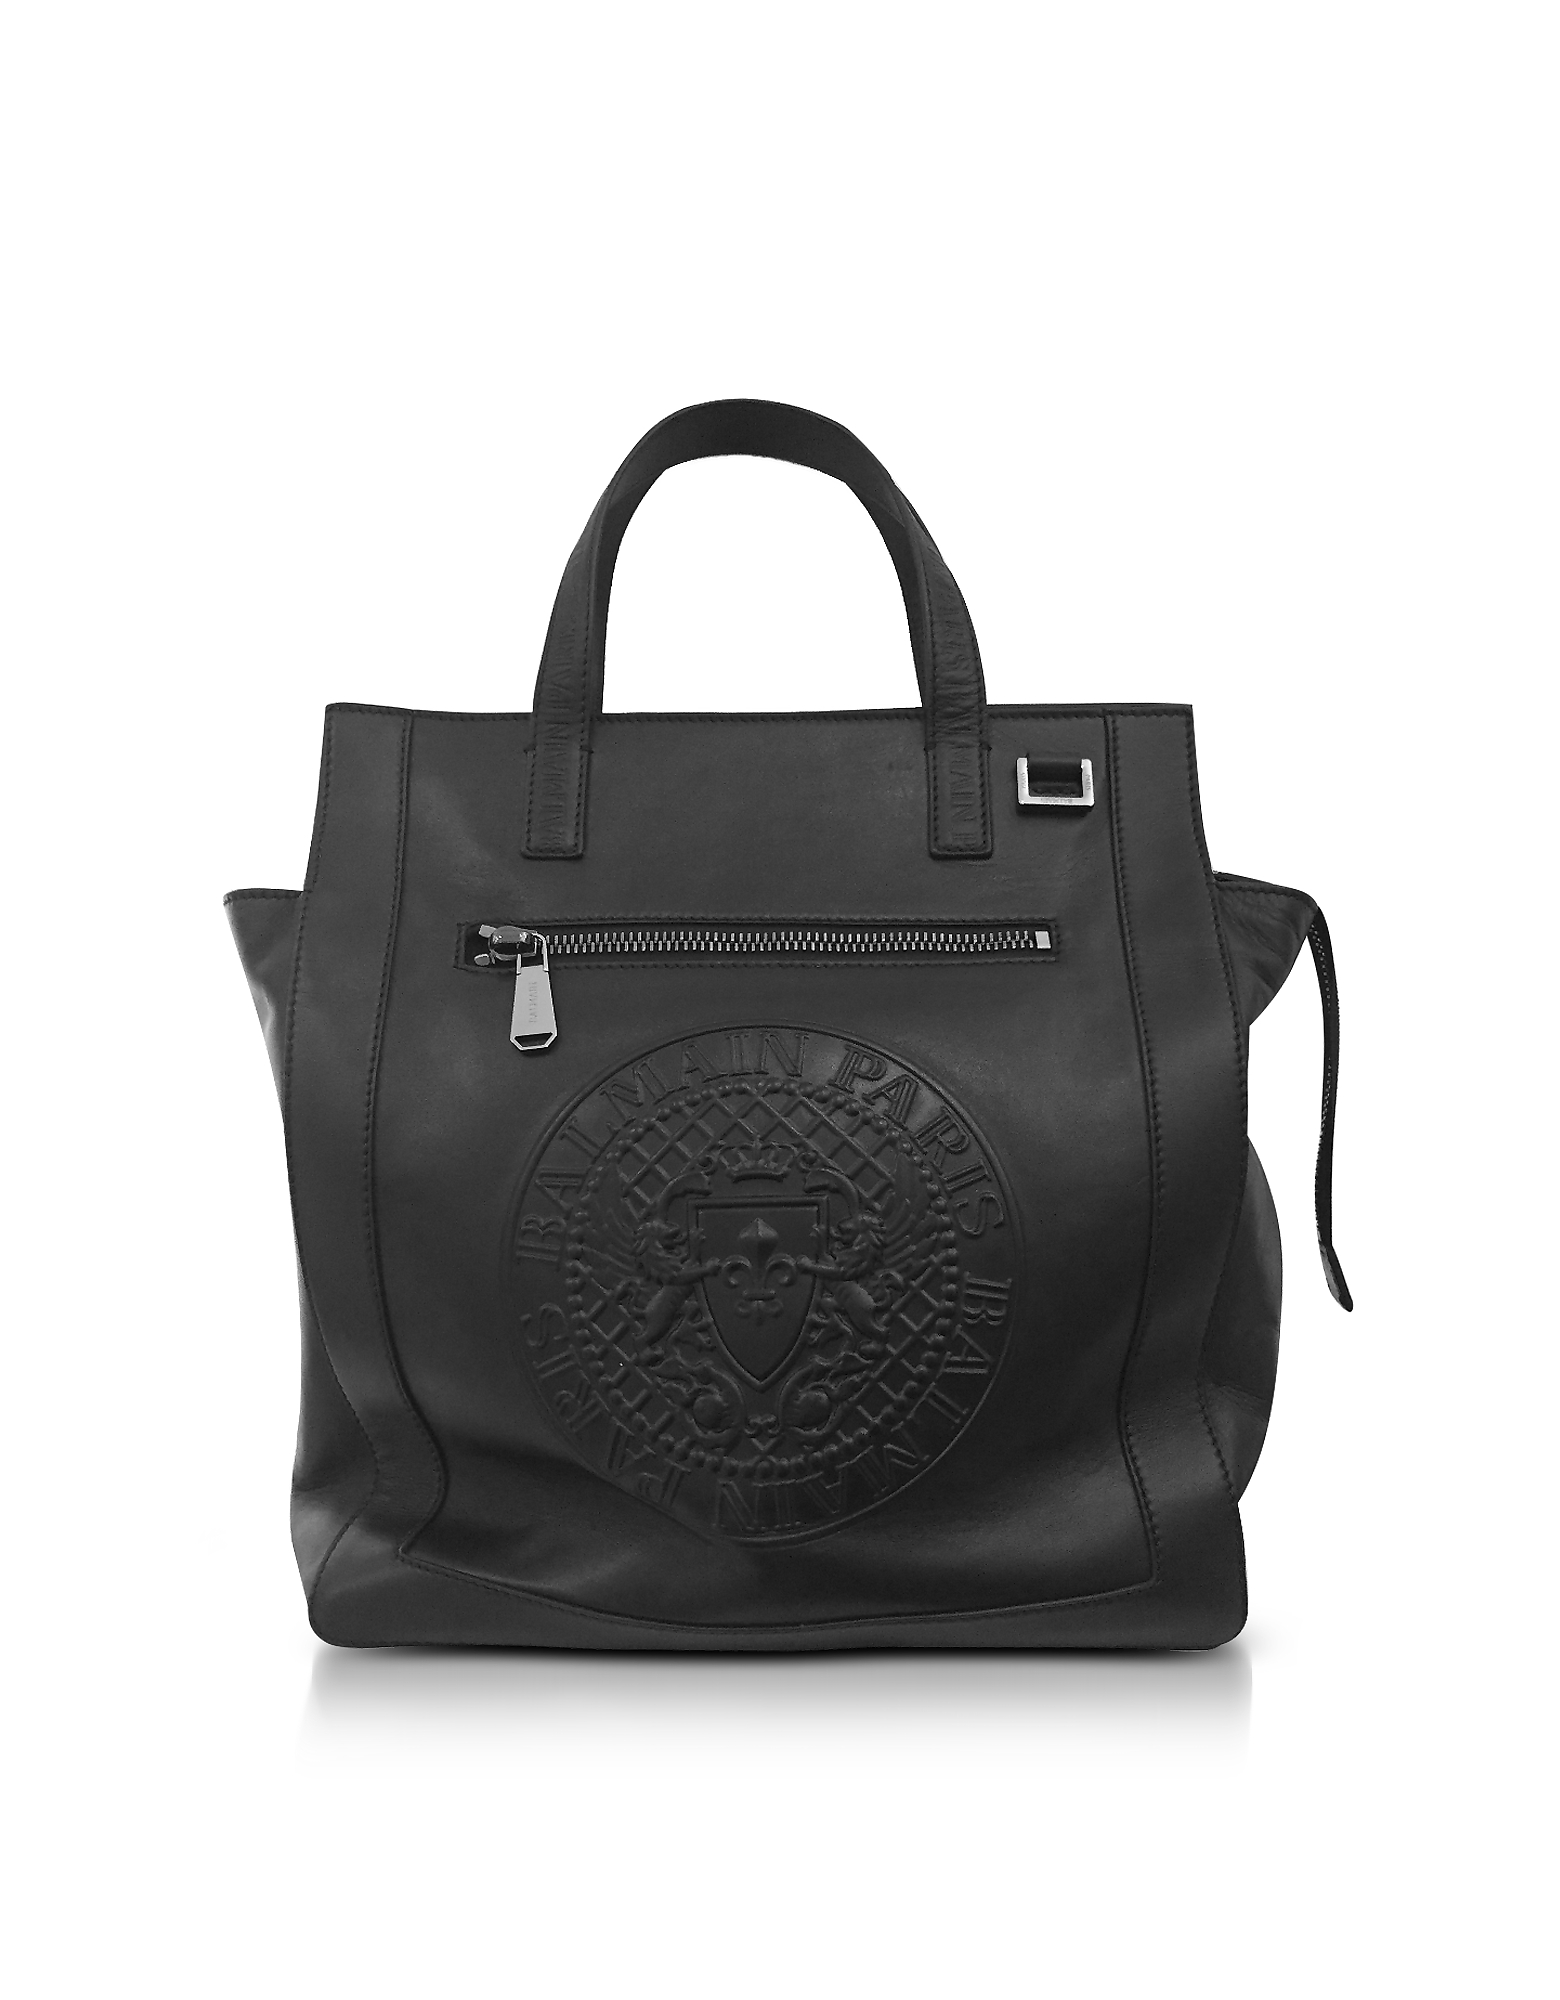 Balmain Men's Bags, Black Smooth Leather Men's Square Tote Bag w/Embossed Blazon